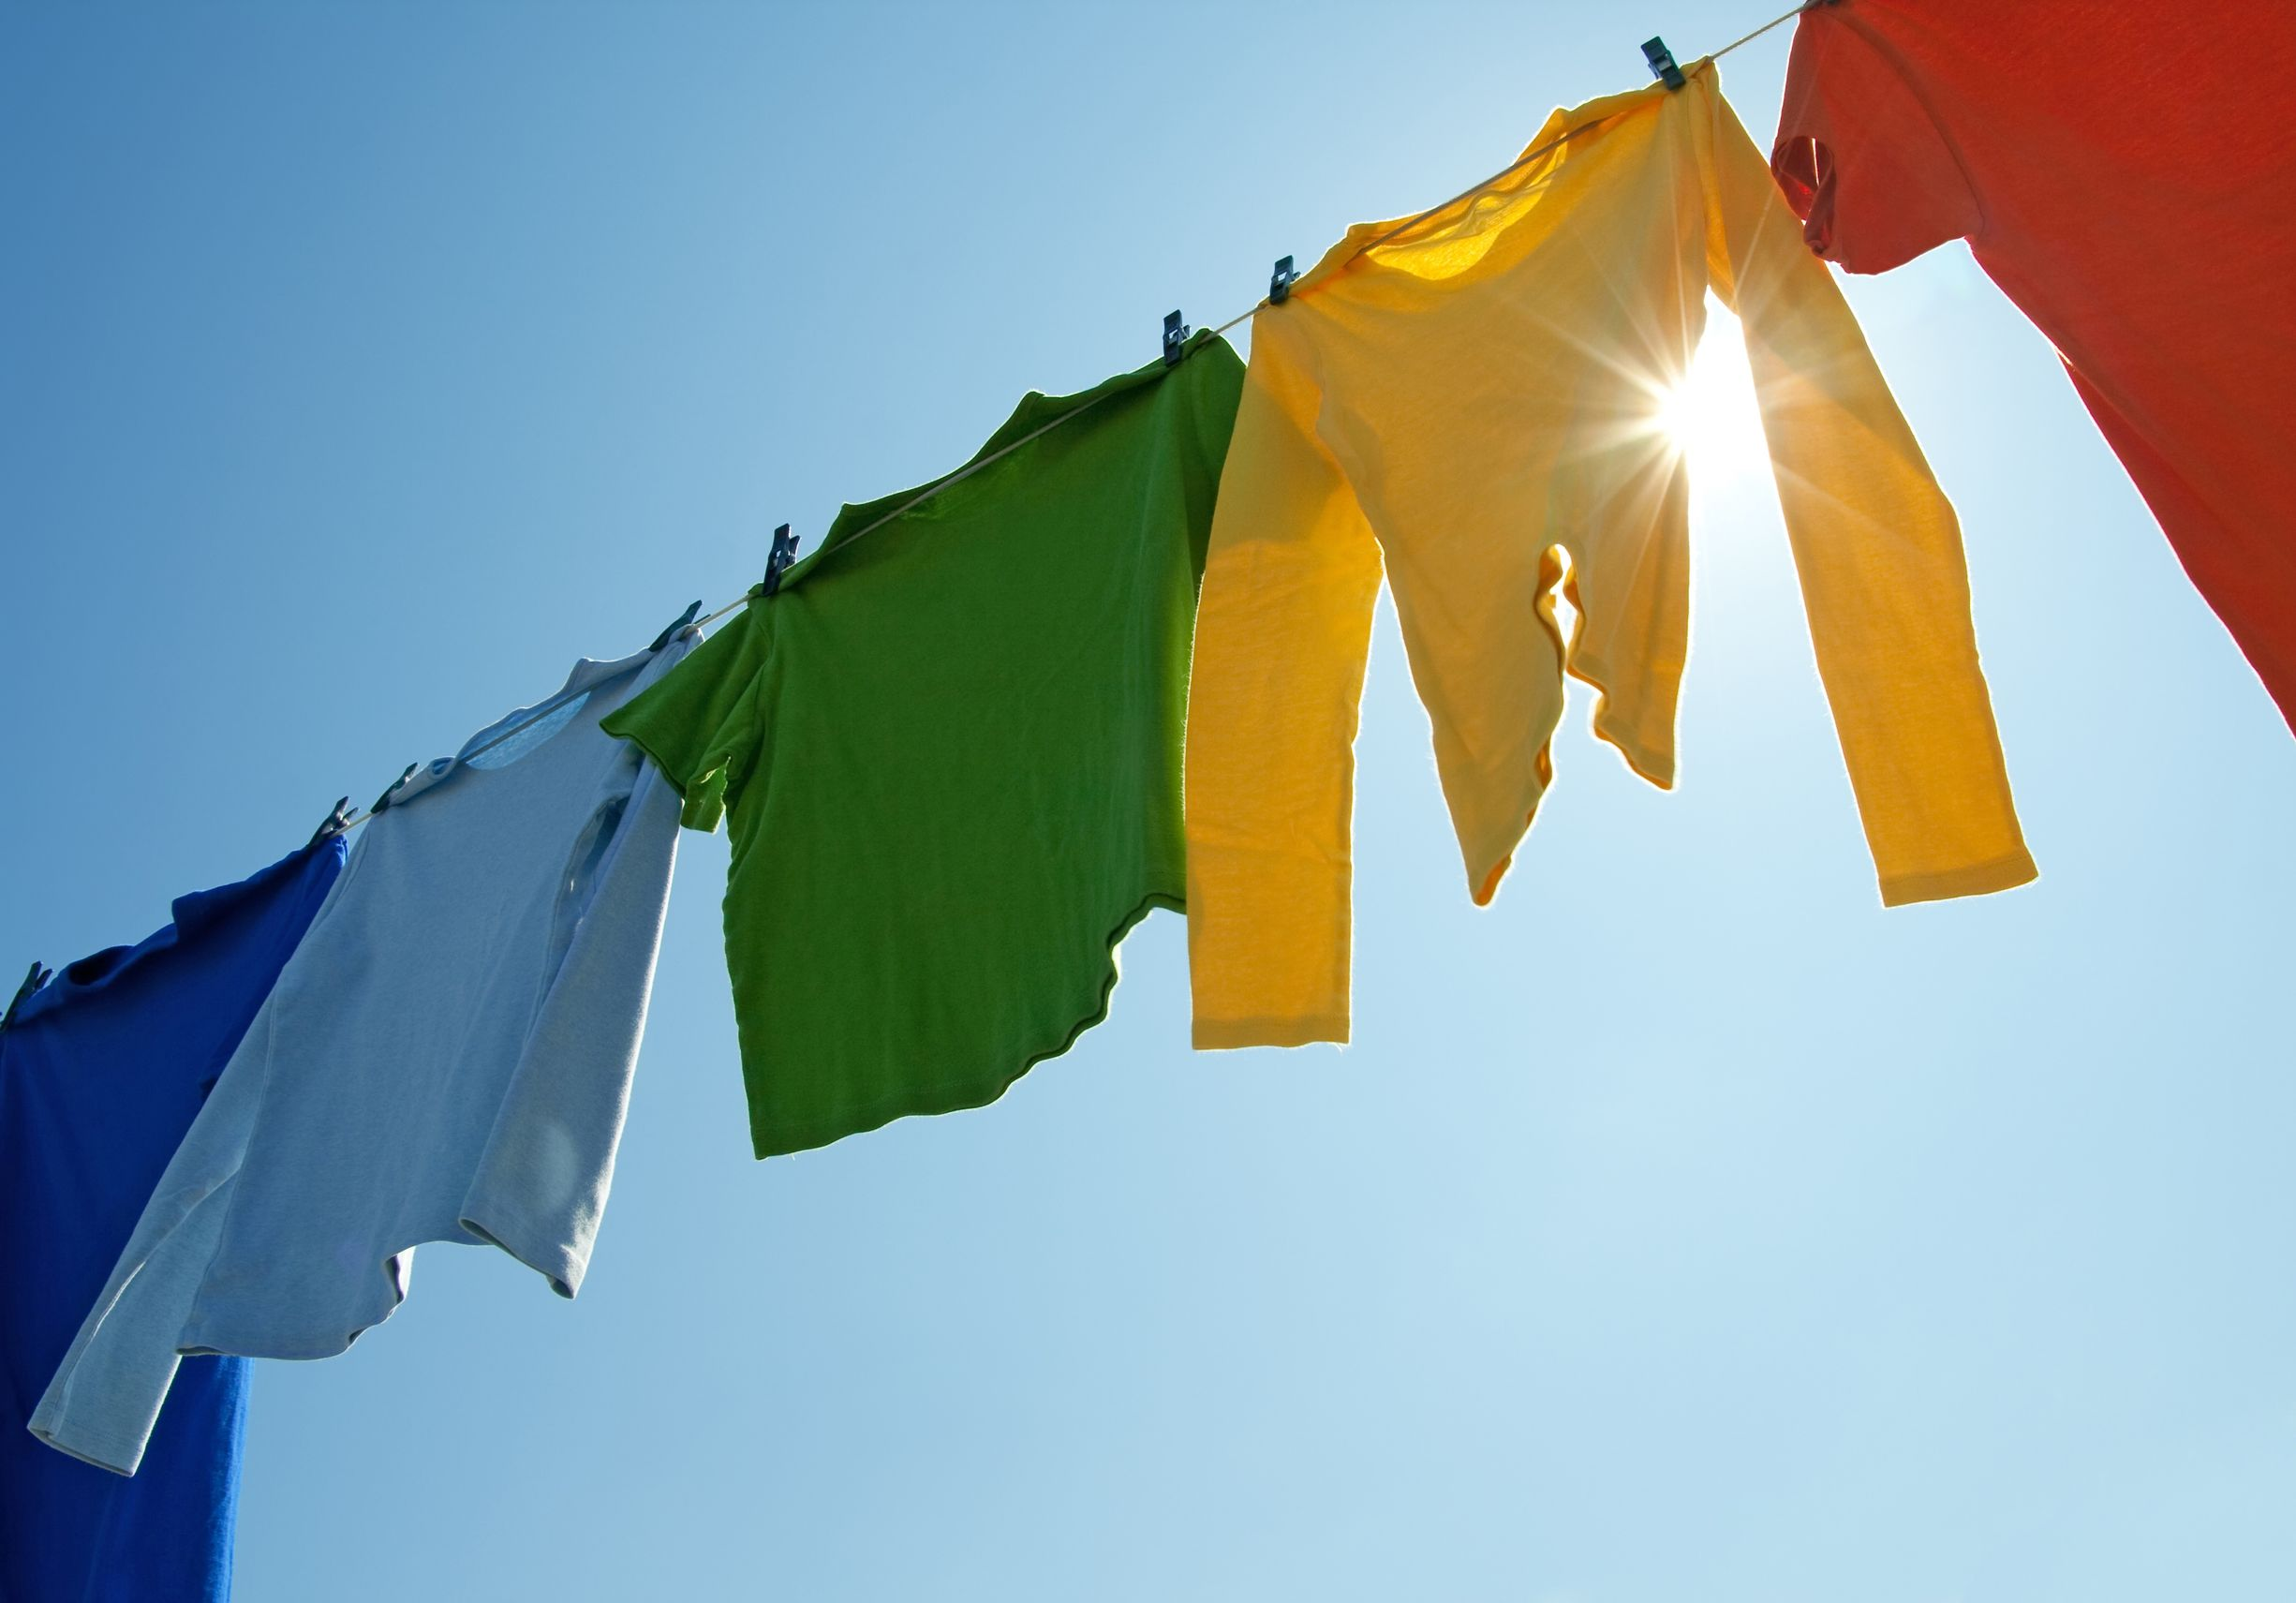 10856478 - colorful clothes hanging to dry on a laundry line and sun shining in the blue sky.